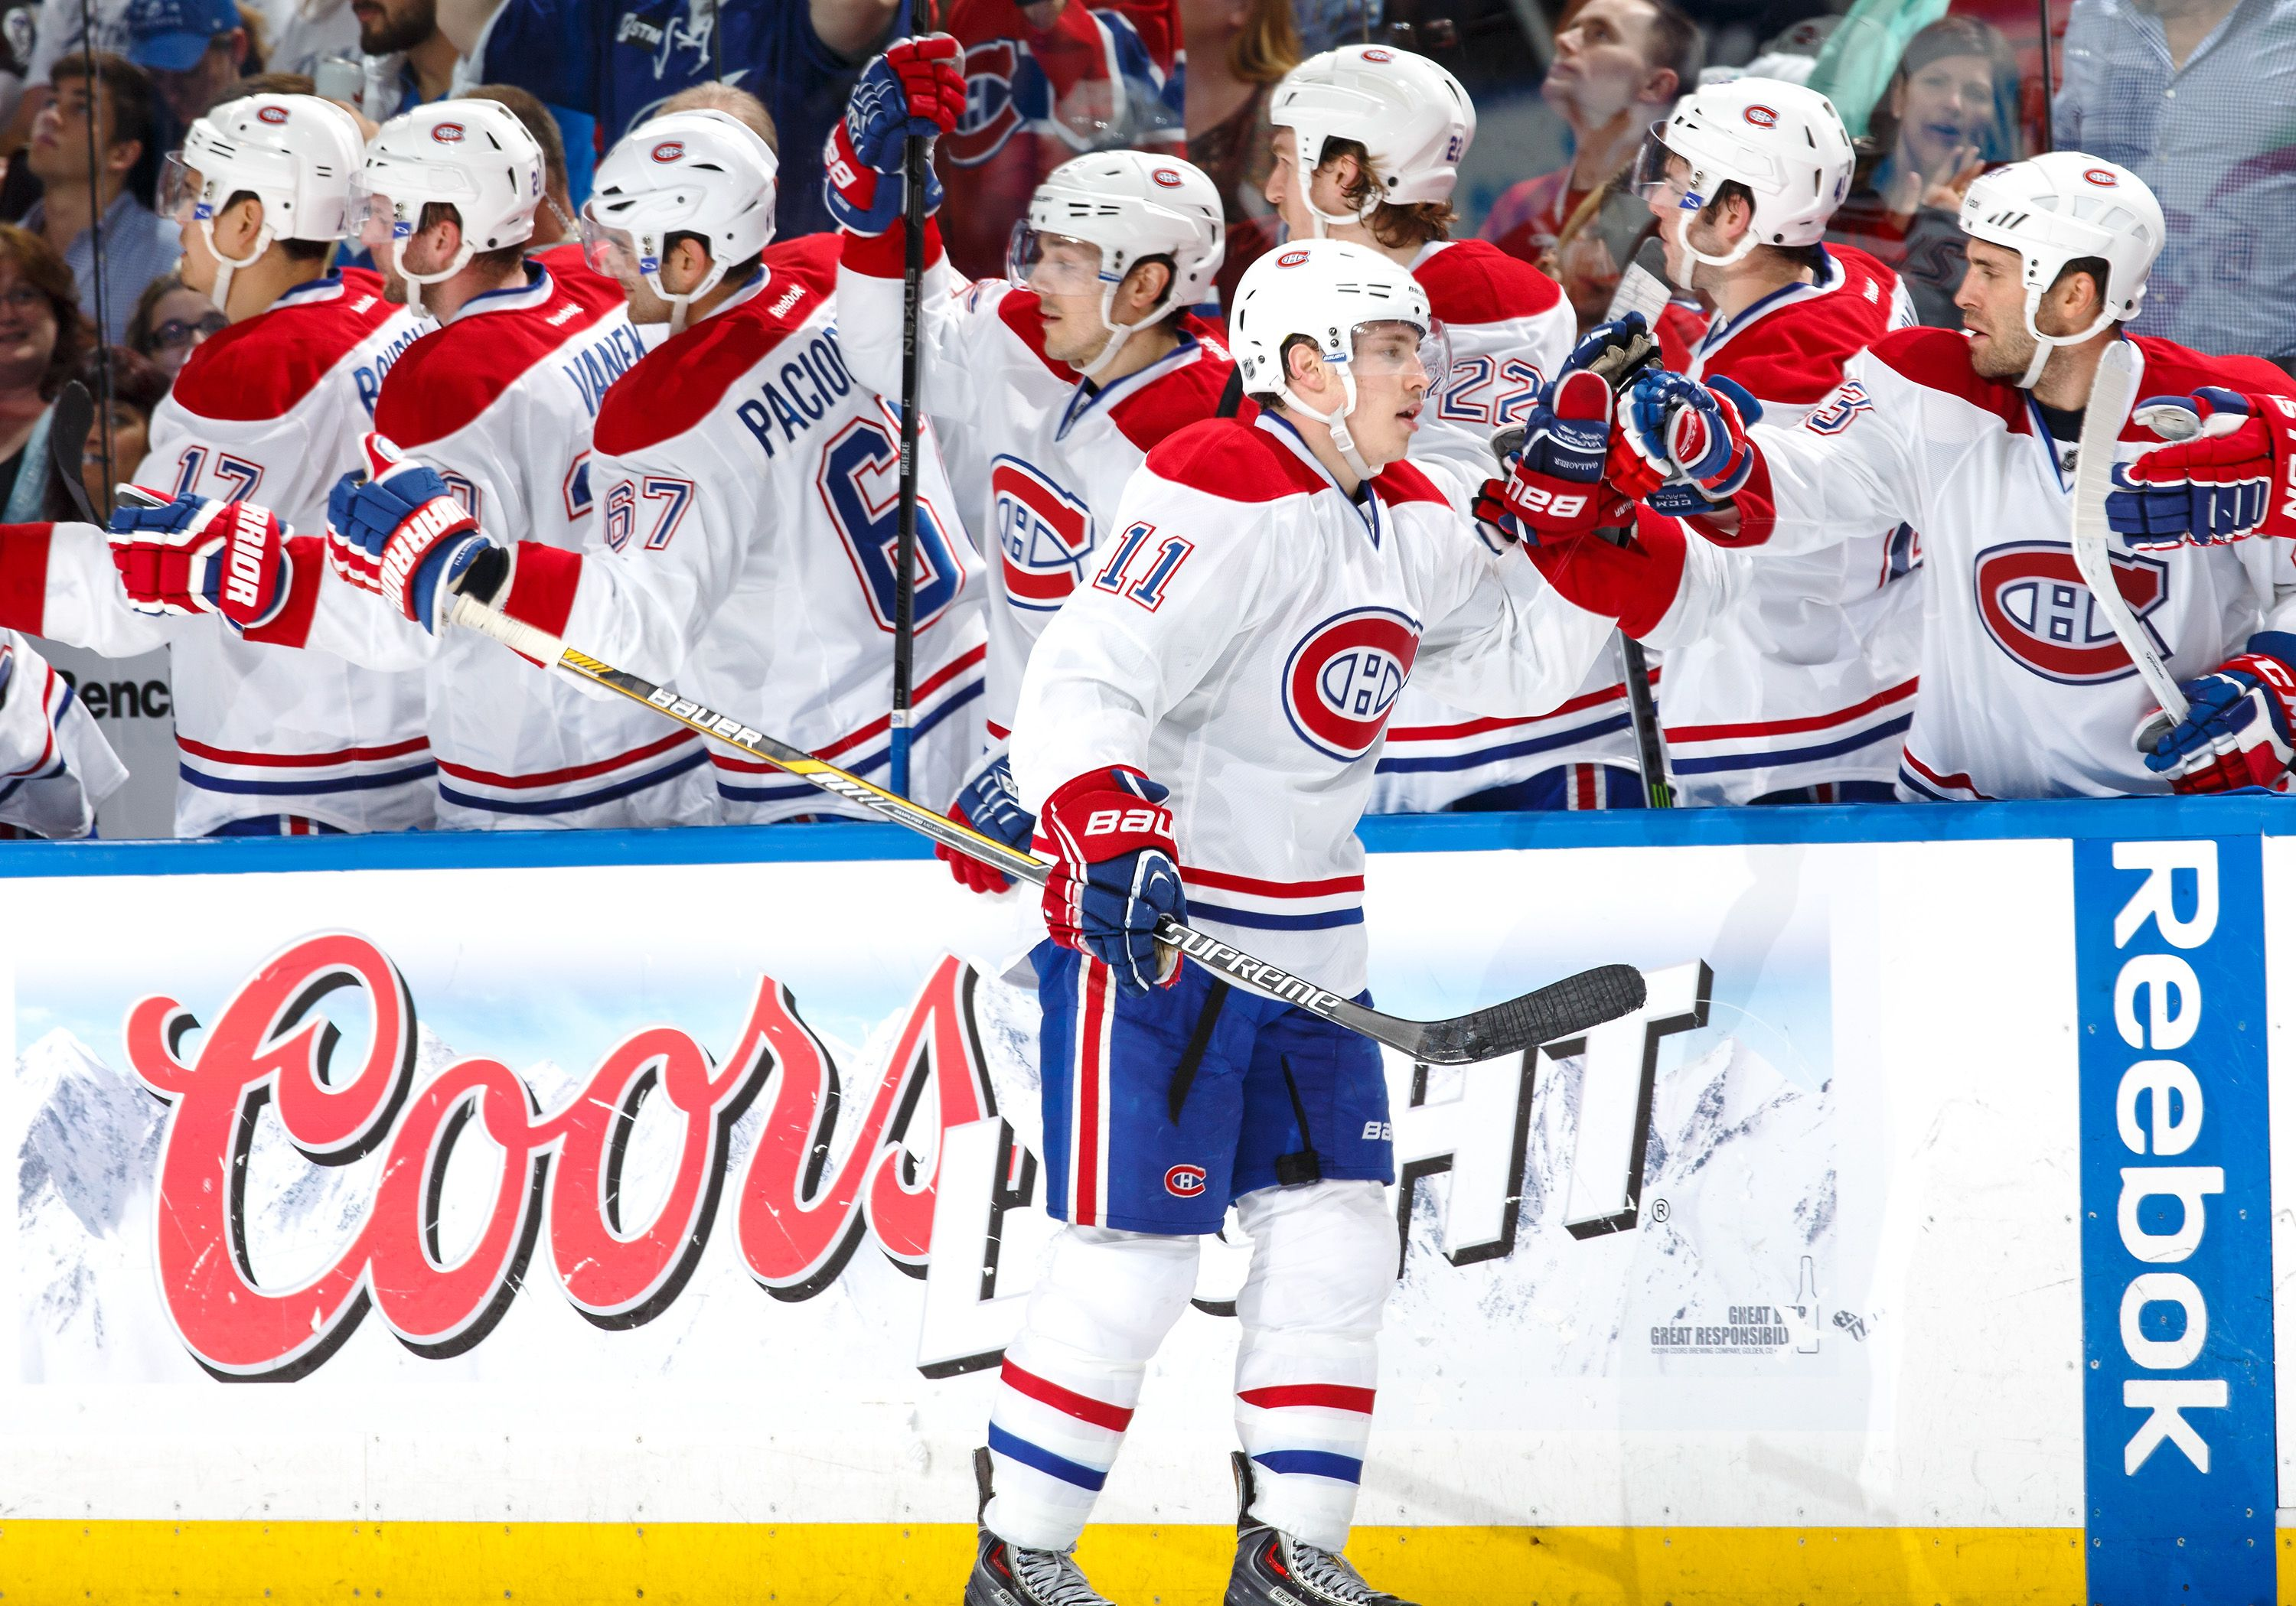 Brendan Gallagher inscrit un superbe but sans aide. http